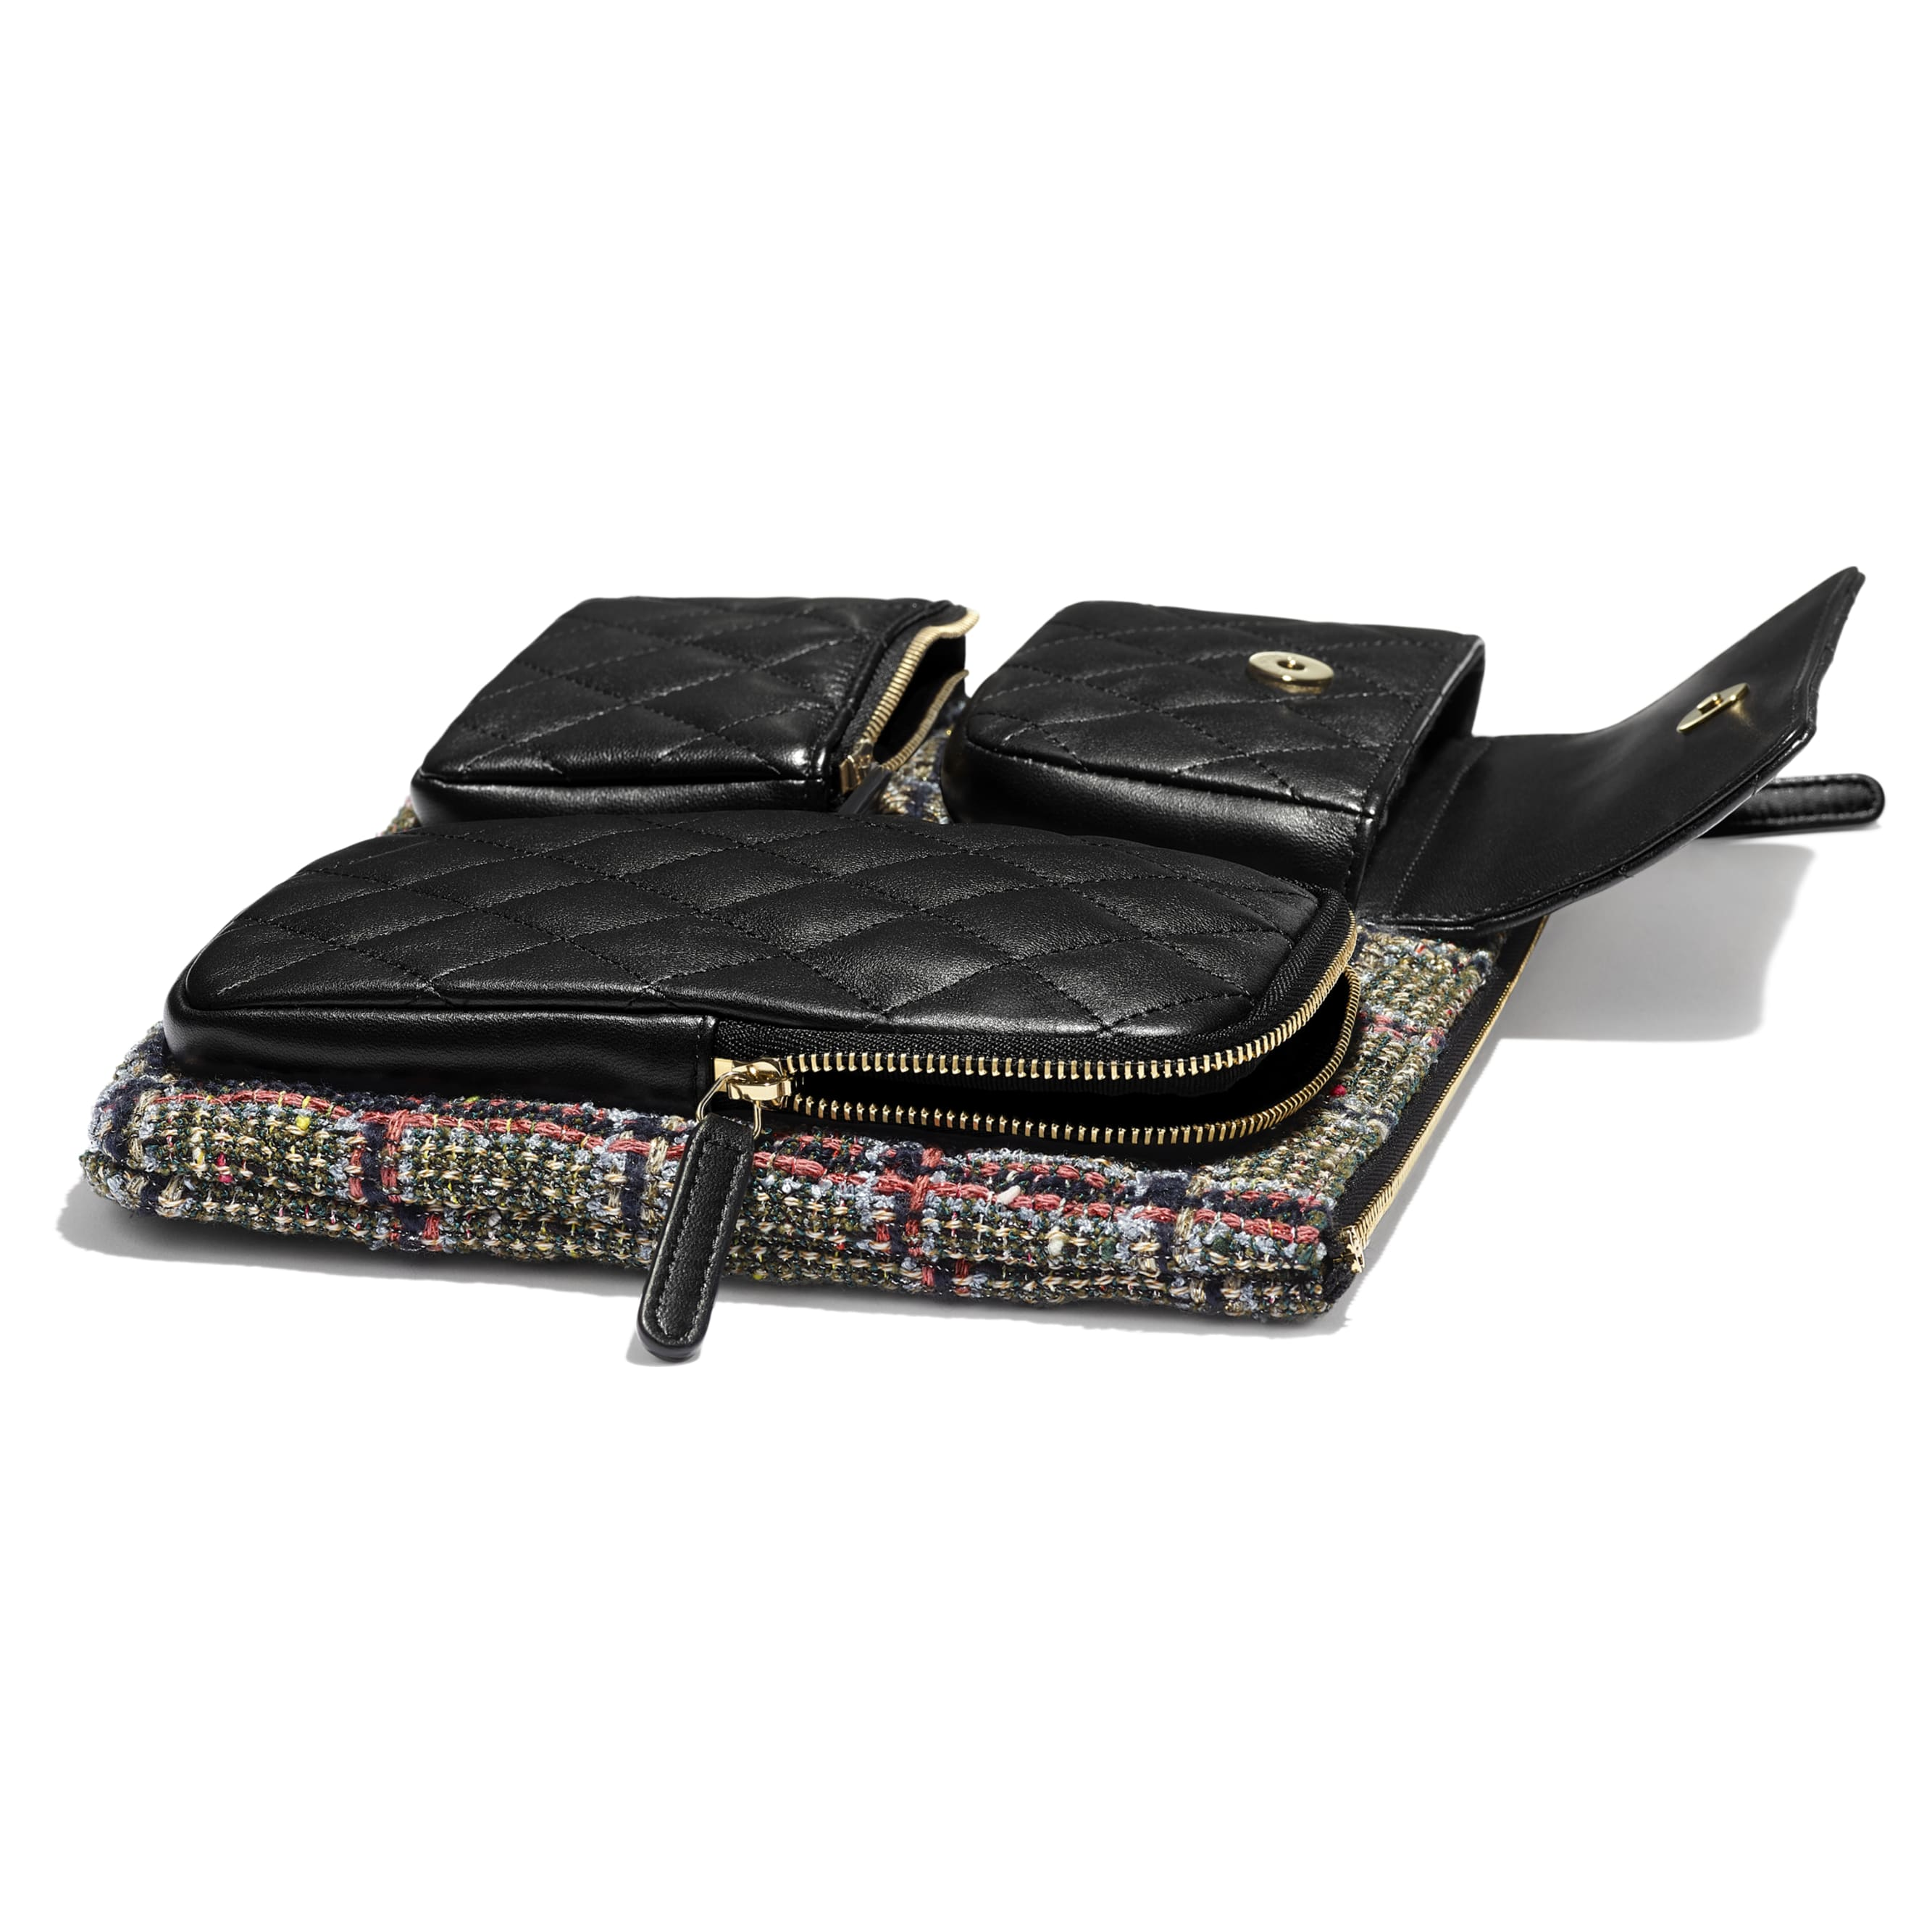 Pouch - Black, Khaki, Gray & Red - Tweed, Lambskin & Gold-Tone Metal - CHANEL - Extra view - see standard sized version